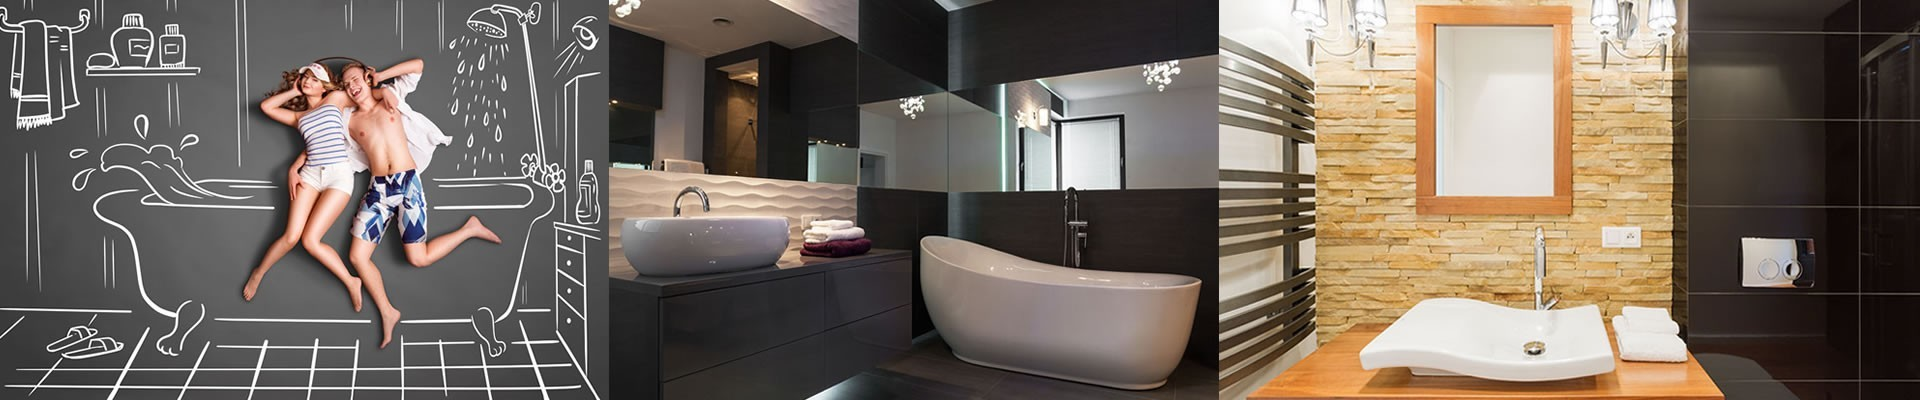 Bathroom | Cabinets, Mirrors, Lighting & Other Bathroom Ideas